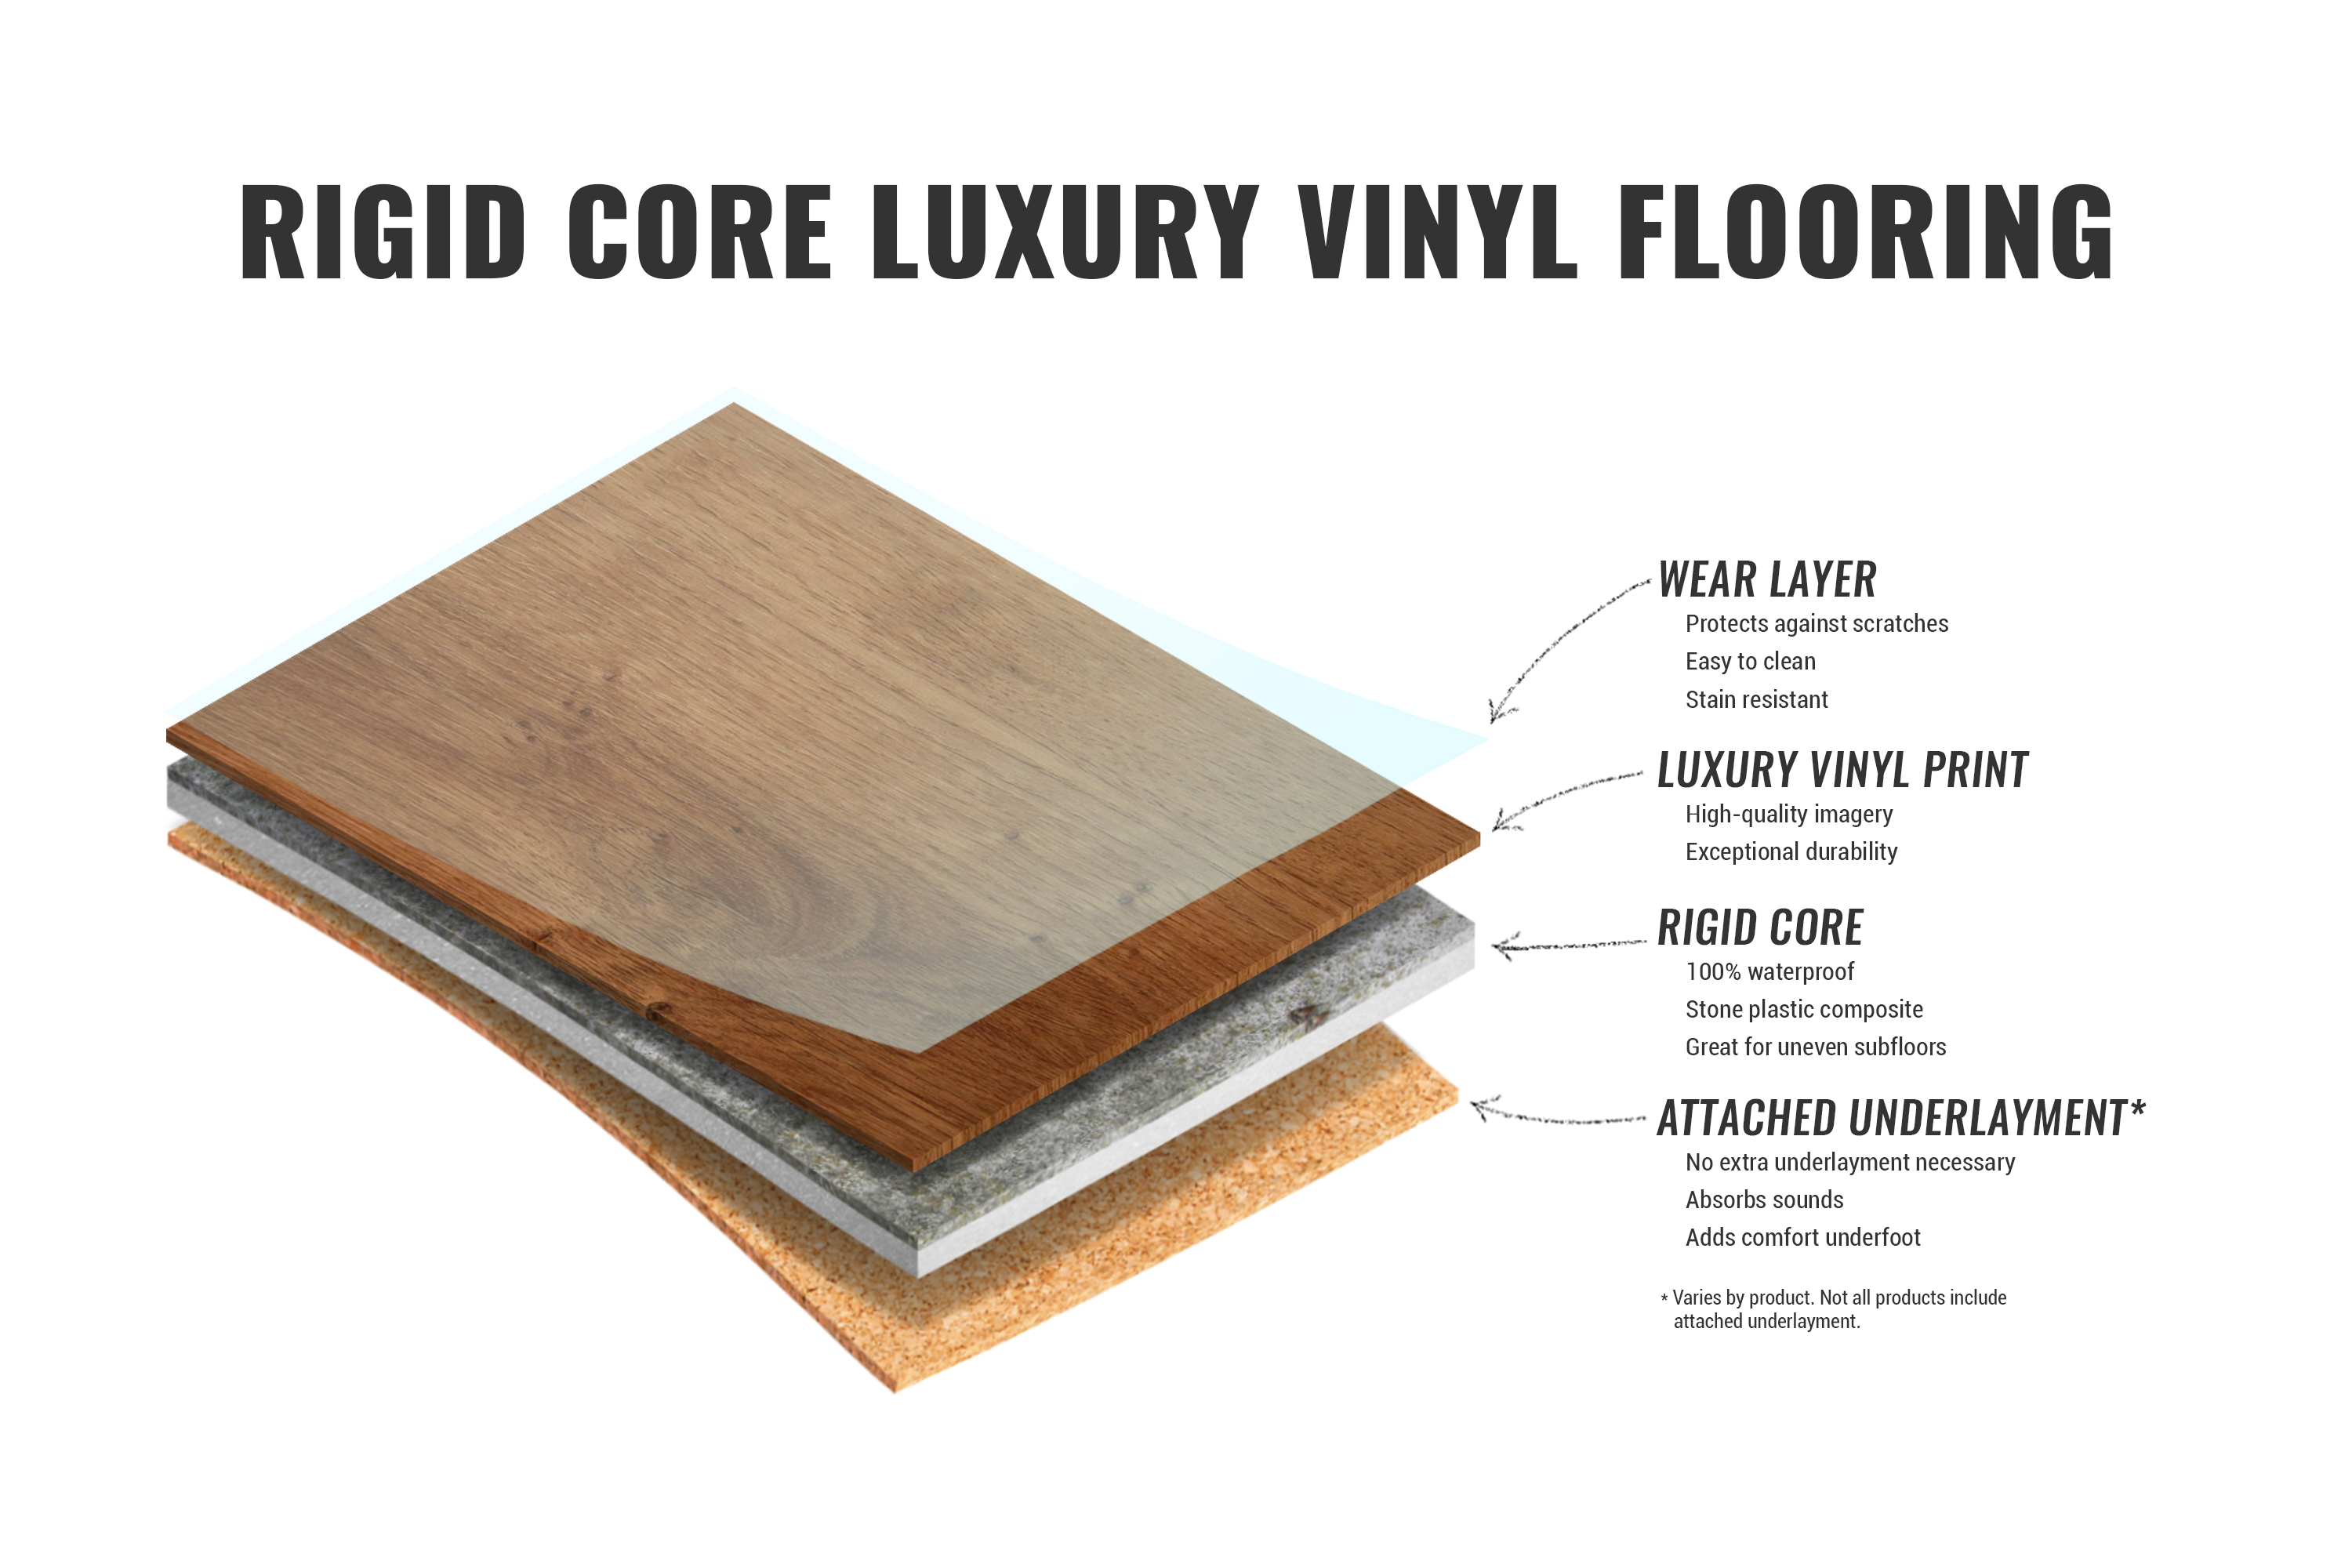 Layers Of Rigid Core Luxury Vinyl Flooring